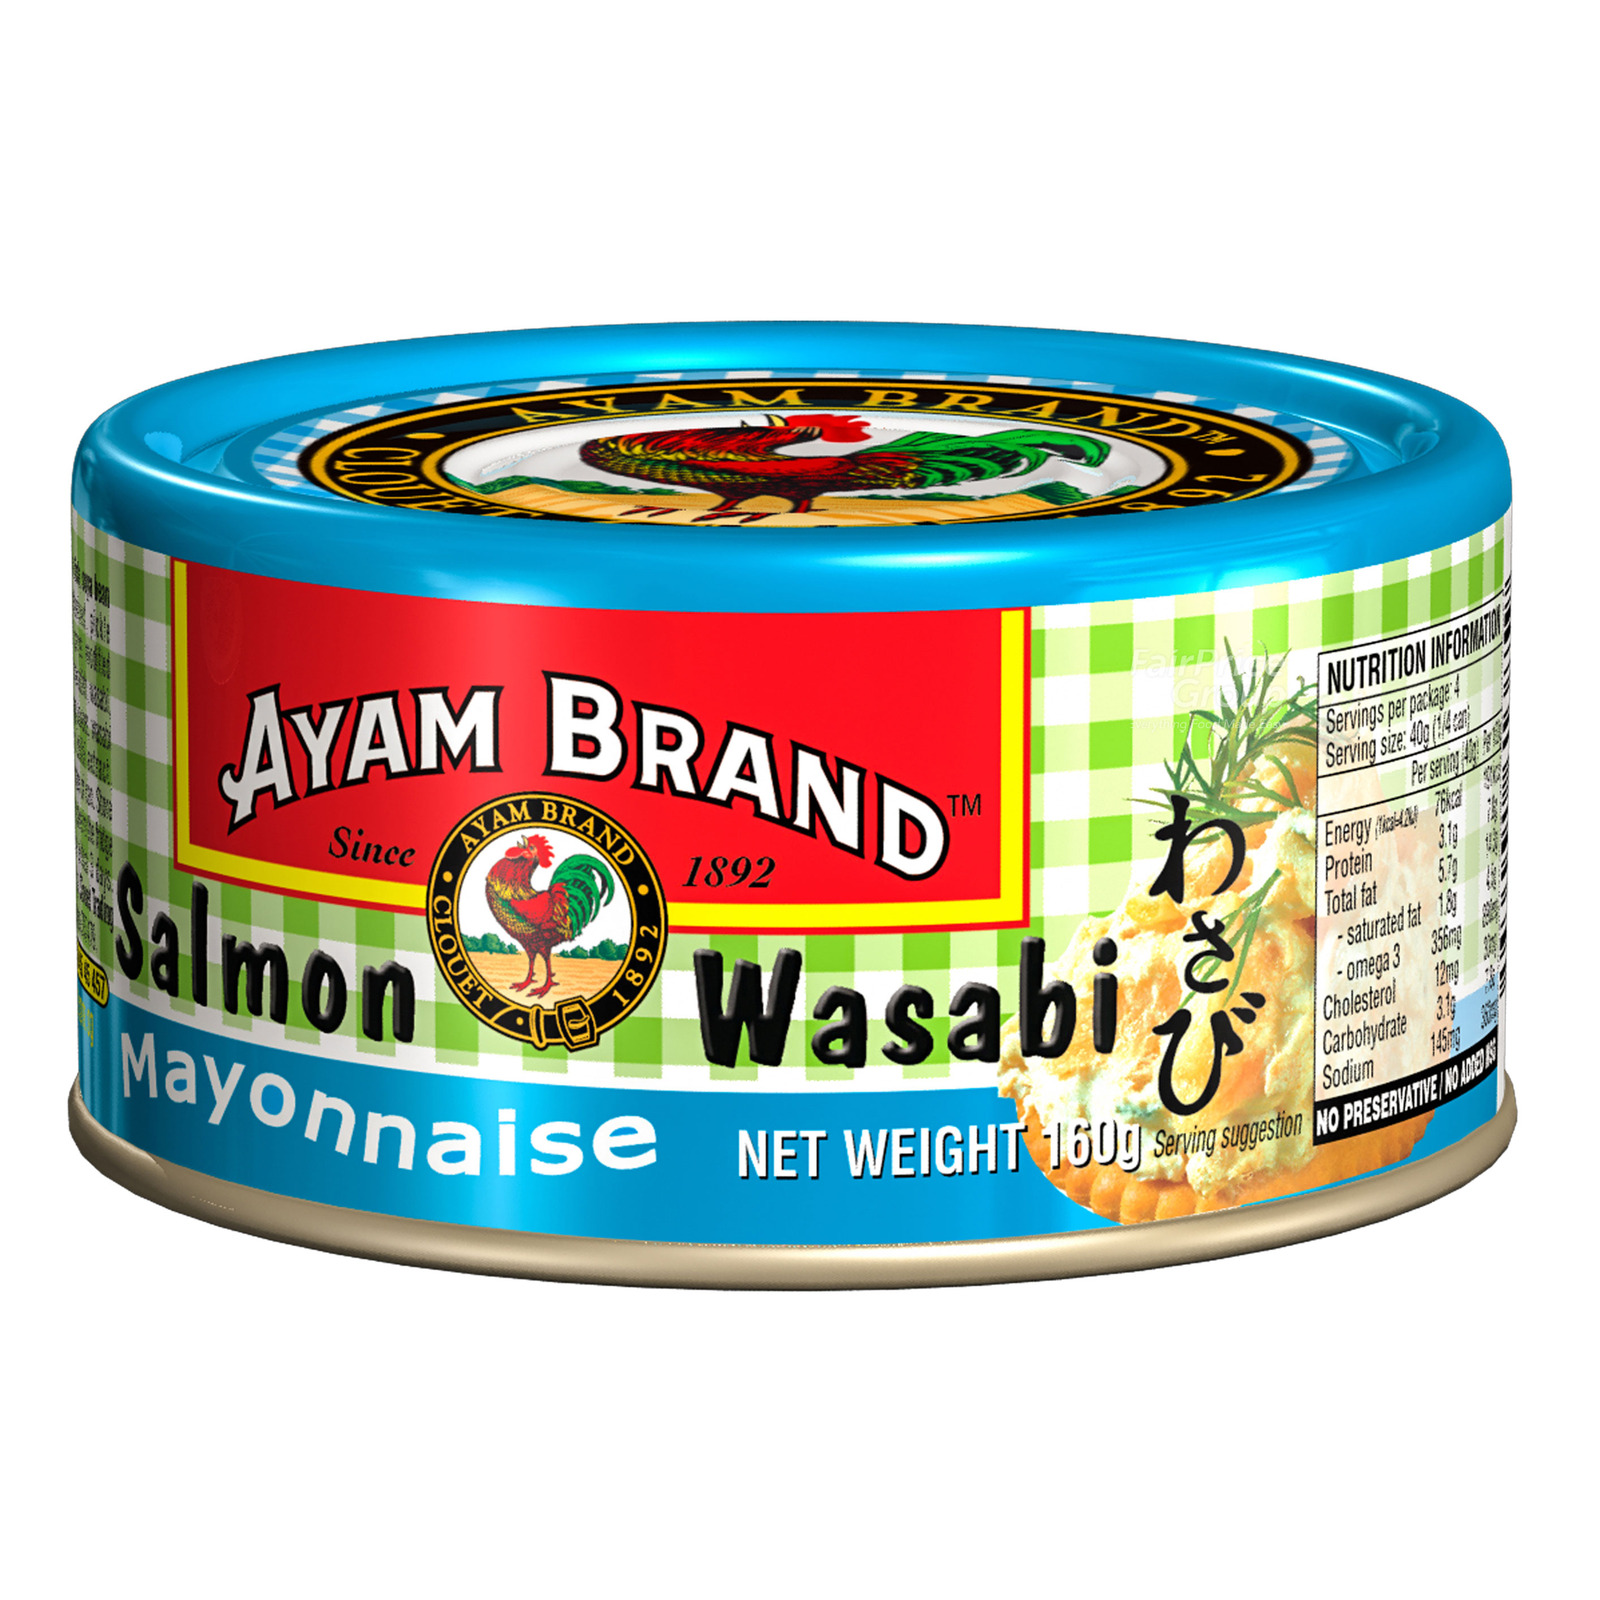 Ayam Brand Spread in Mayonnaise - Salmon (Wasabi)